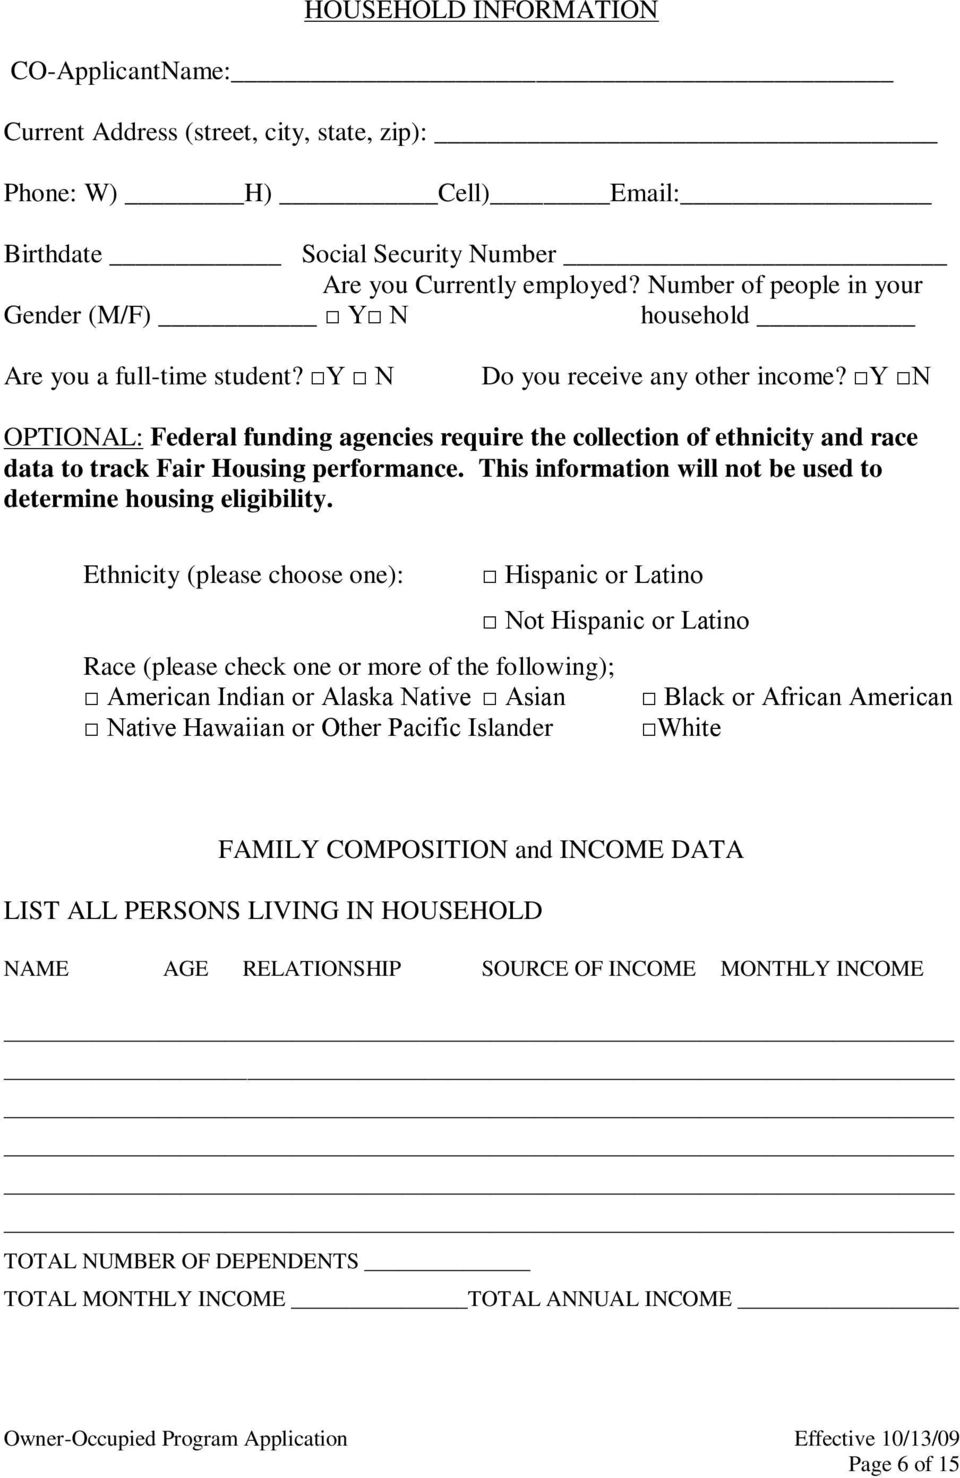 Y N OPTIONAL: Federal funding agencies require the collection of ethnicity and race data to track Fair Housing performance. This information will not be used to determine housing eligibility.